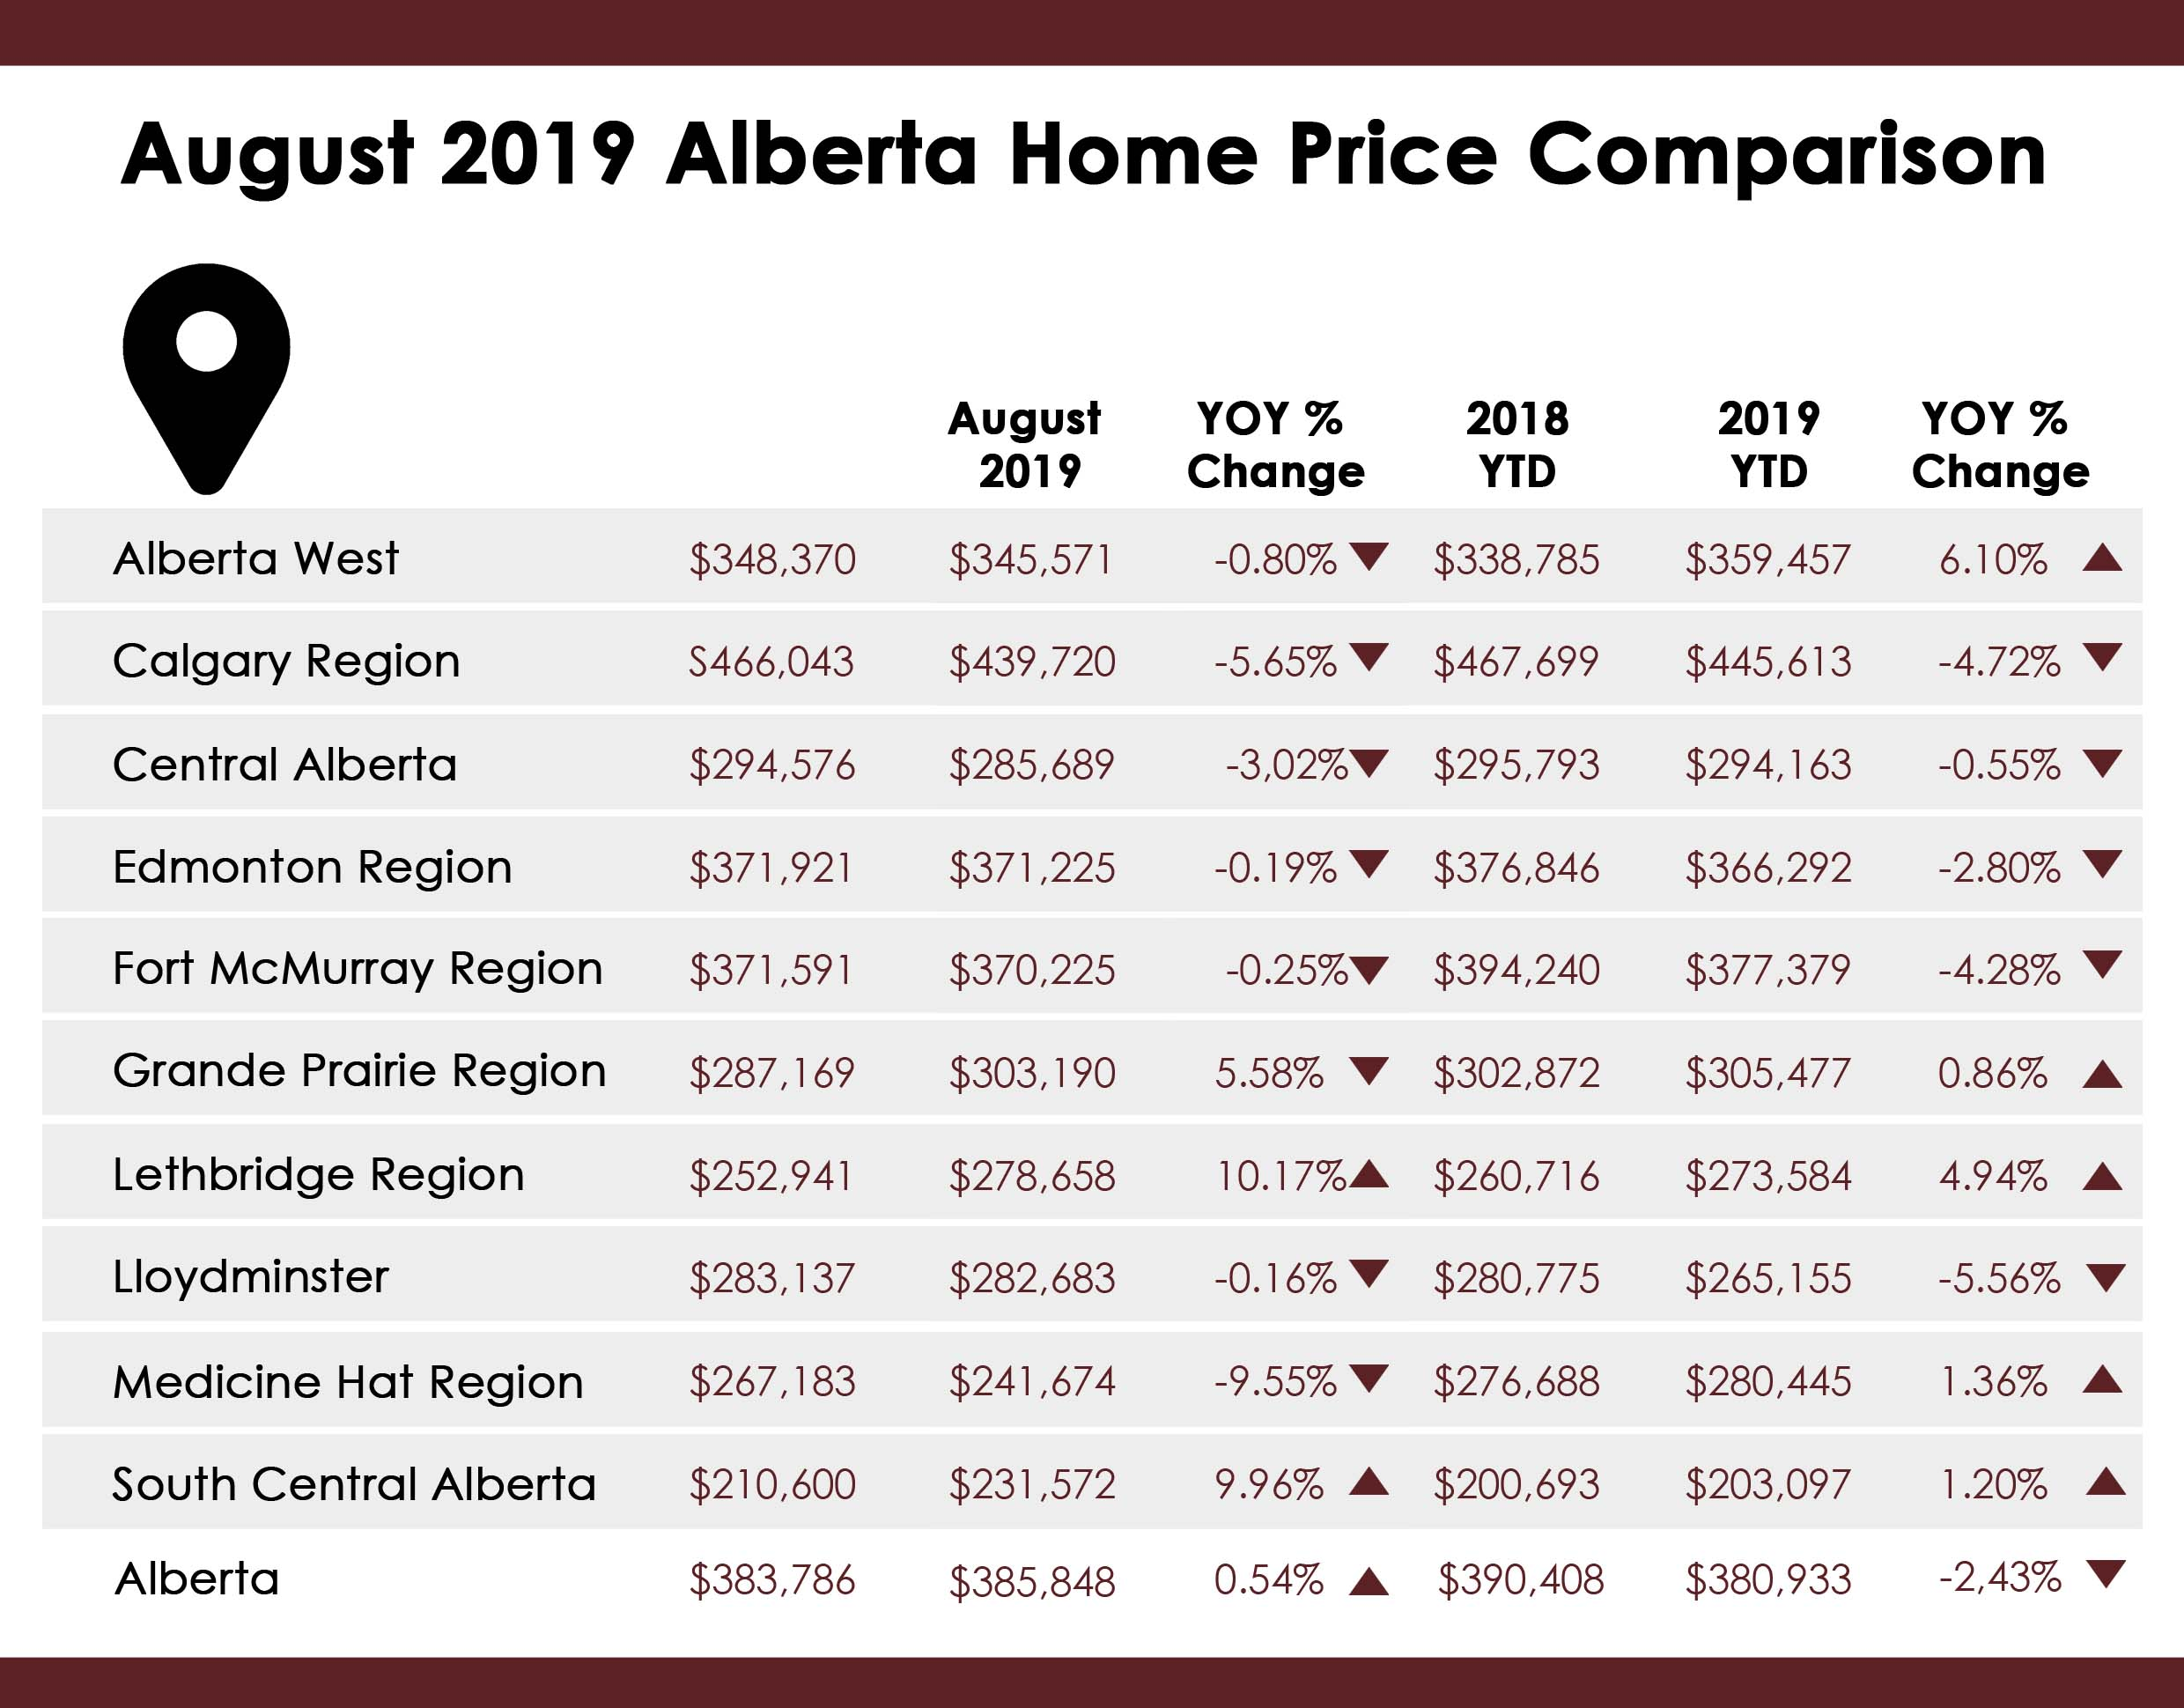 August 2019 Average Home Price